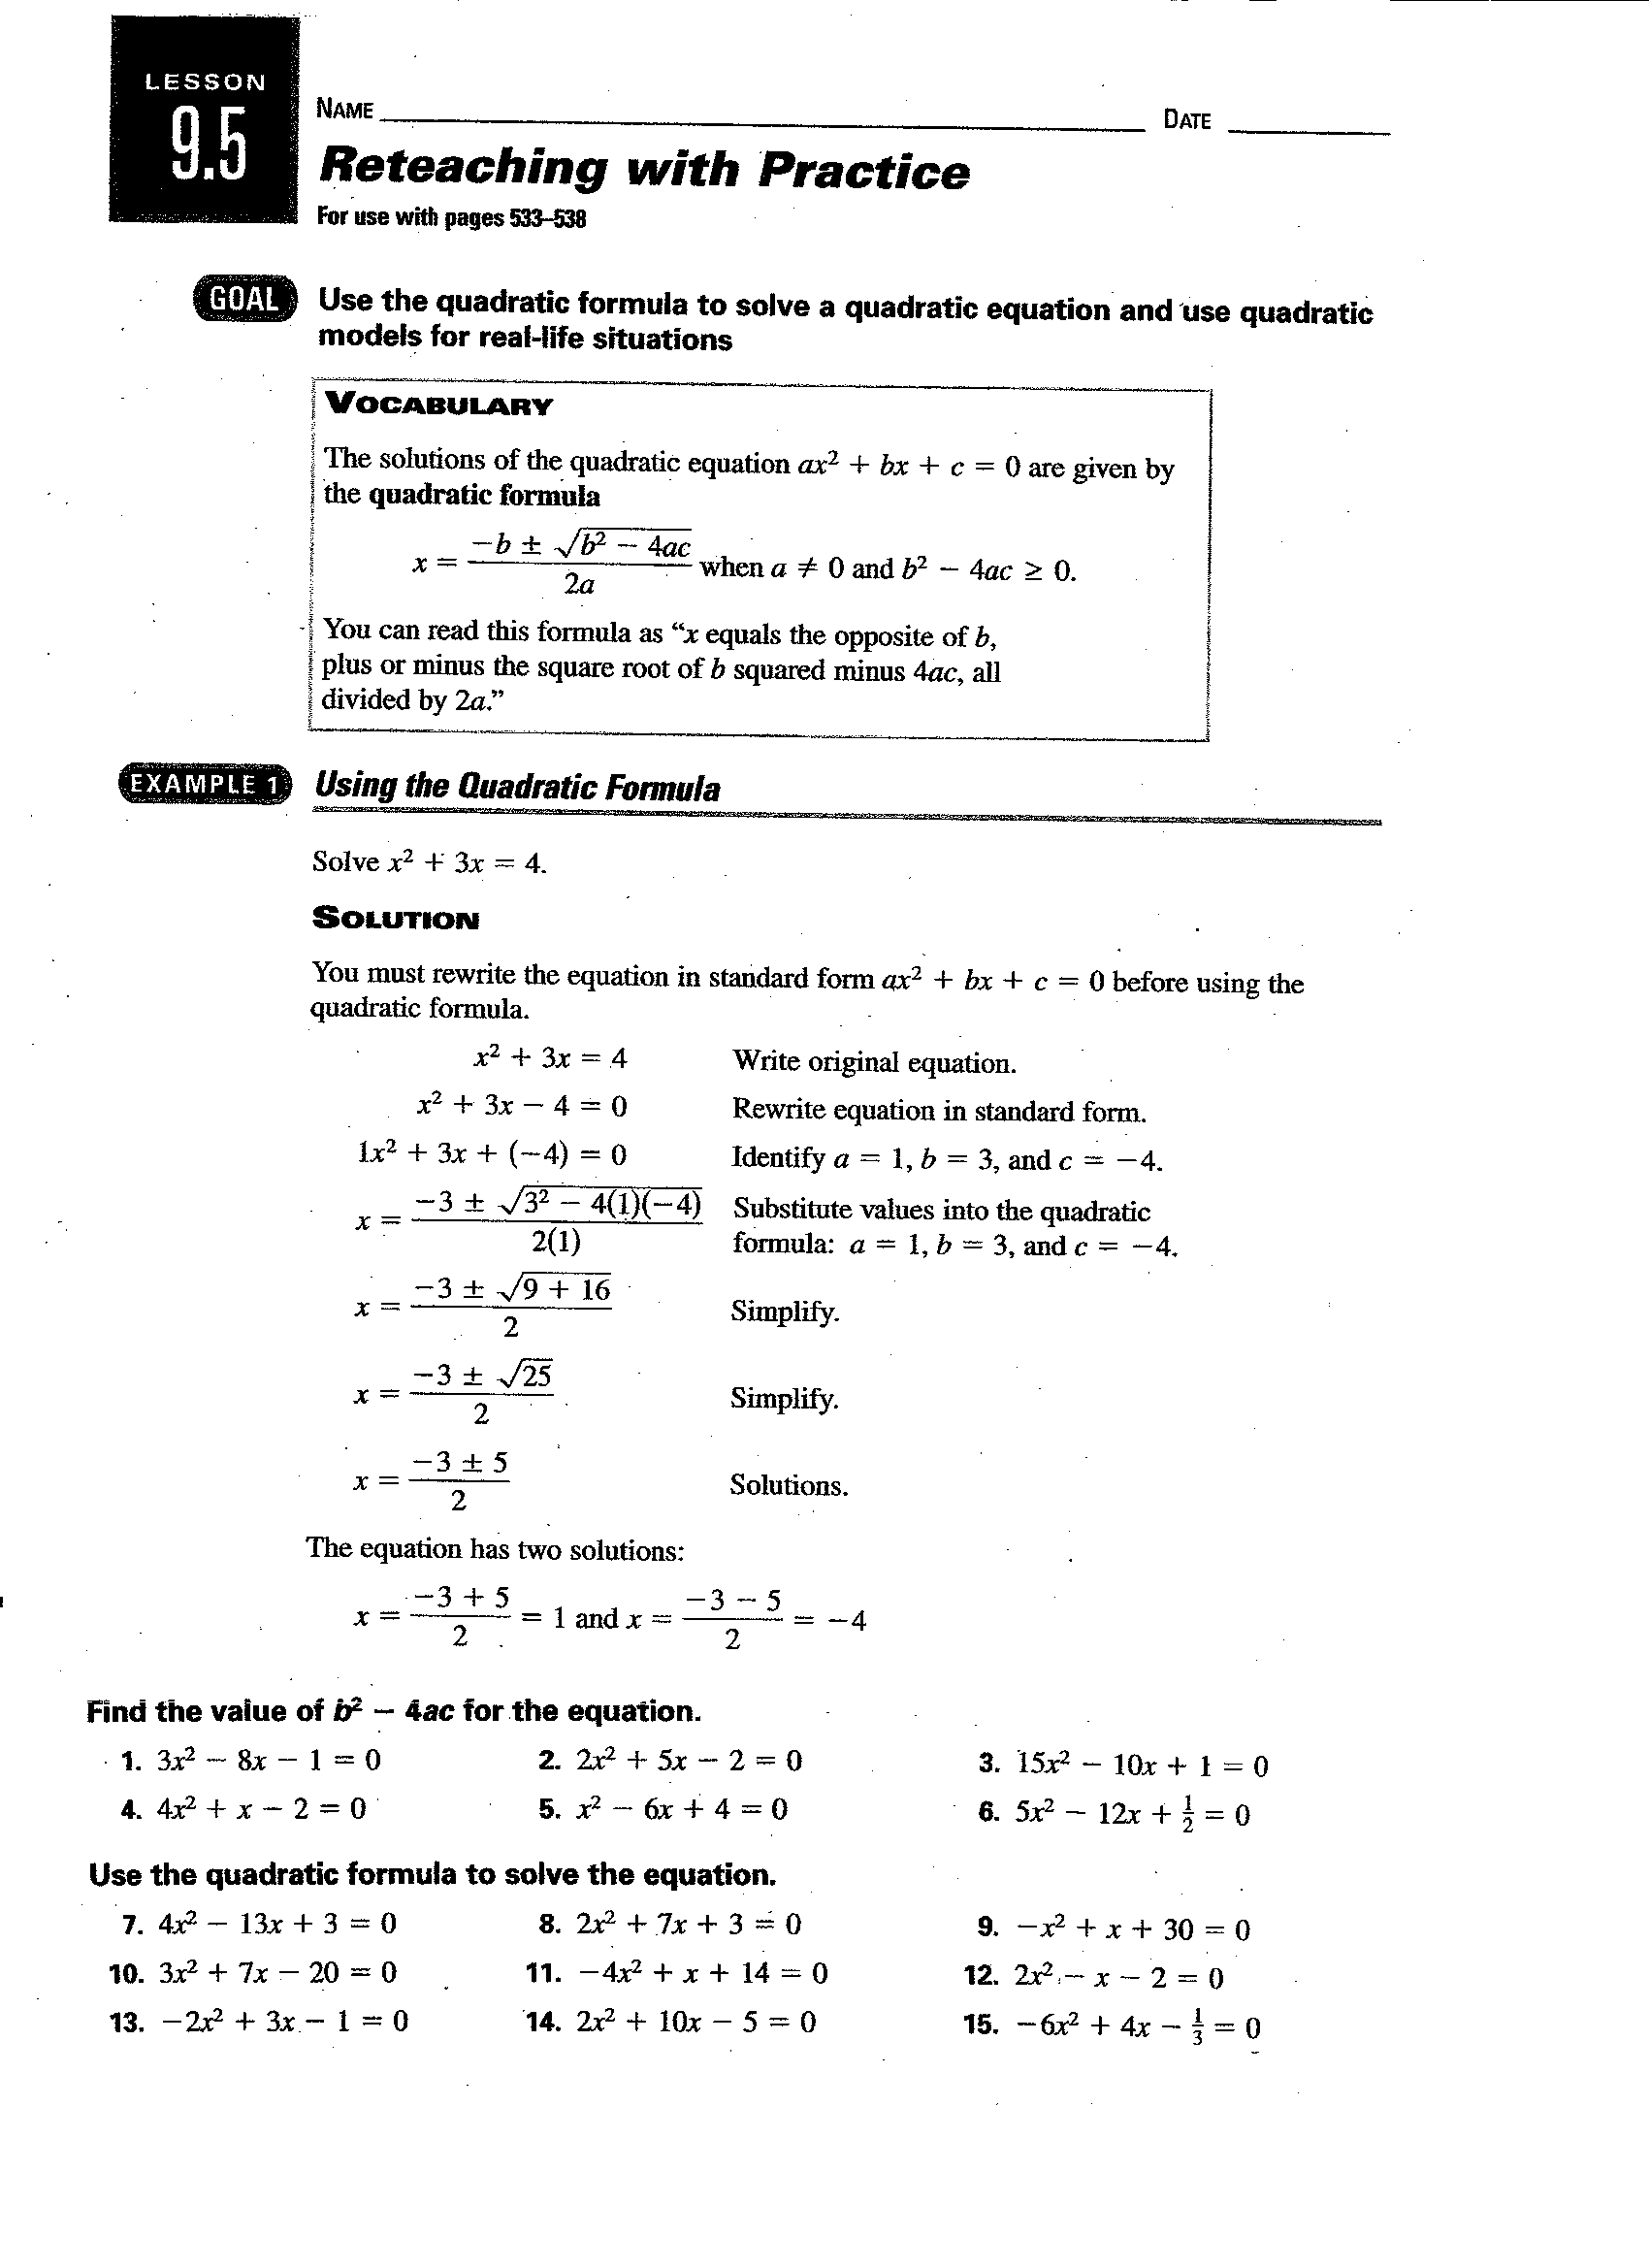 Quadratic Formula Practice Worksheet Algebra 2